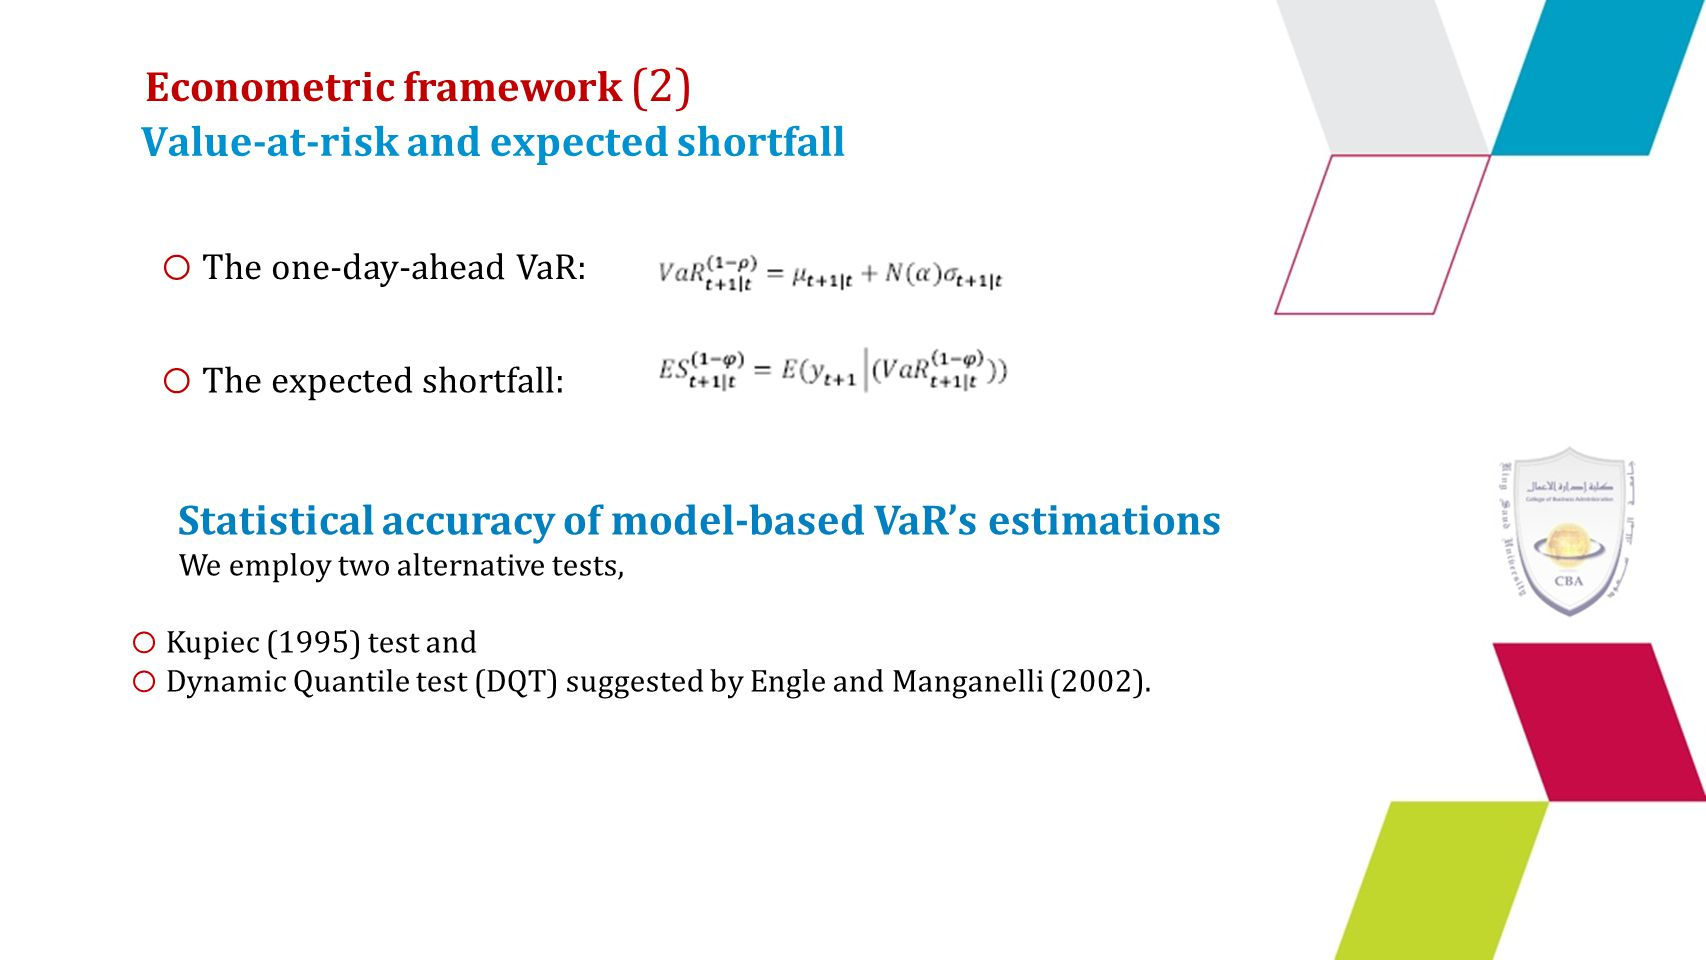 Value-at-risk and expected shortfall o The one-day-ahead VaR: o The expected shortfall: Statistical accuracy of model-based VaR's estimations We employ two alternative tests, o Kupiec (1995) test and o Dynamic Quantile test (DQT) suggested by Engle and Manganelli (2002).